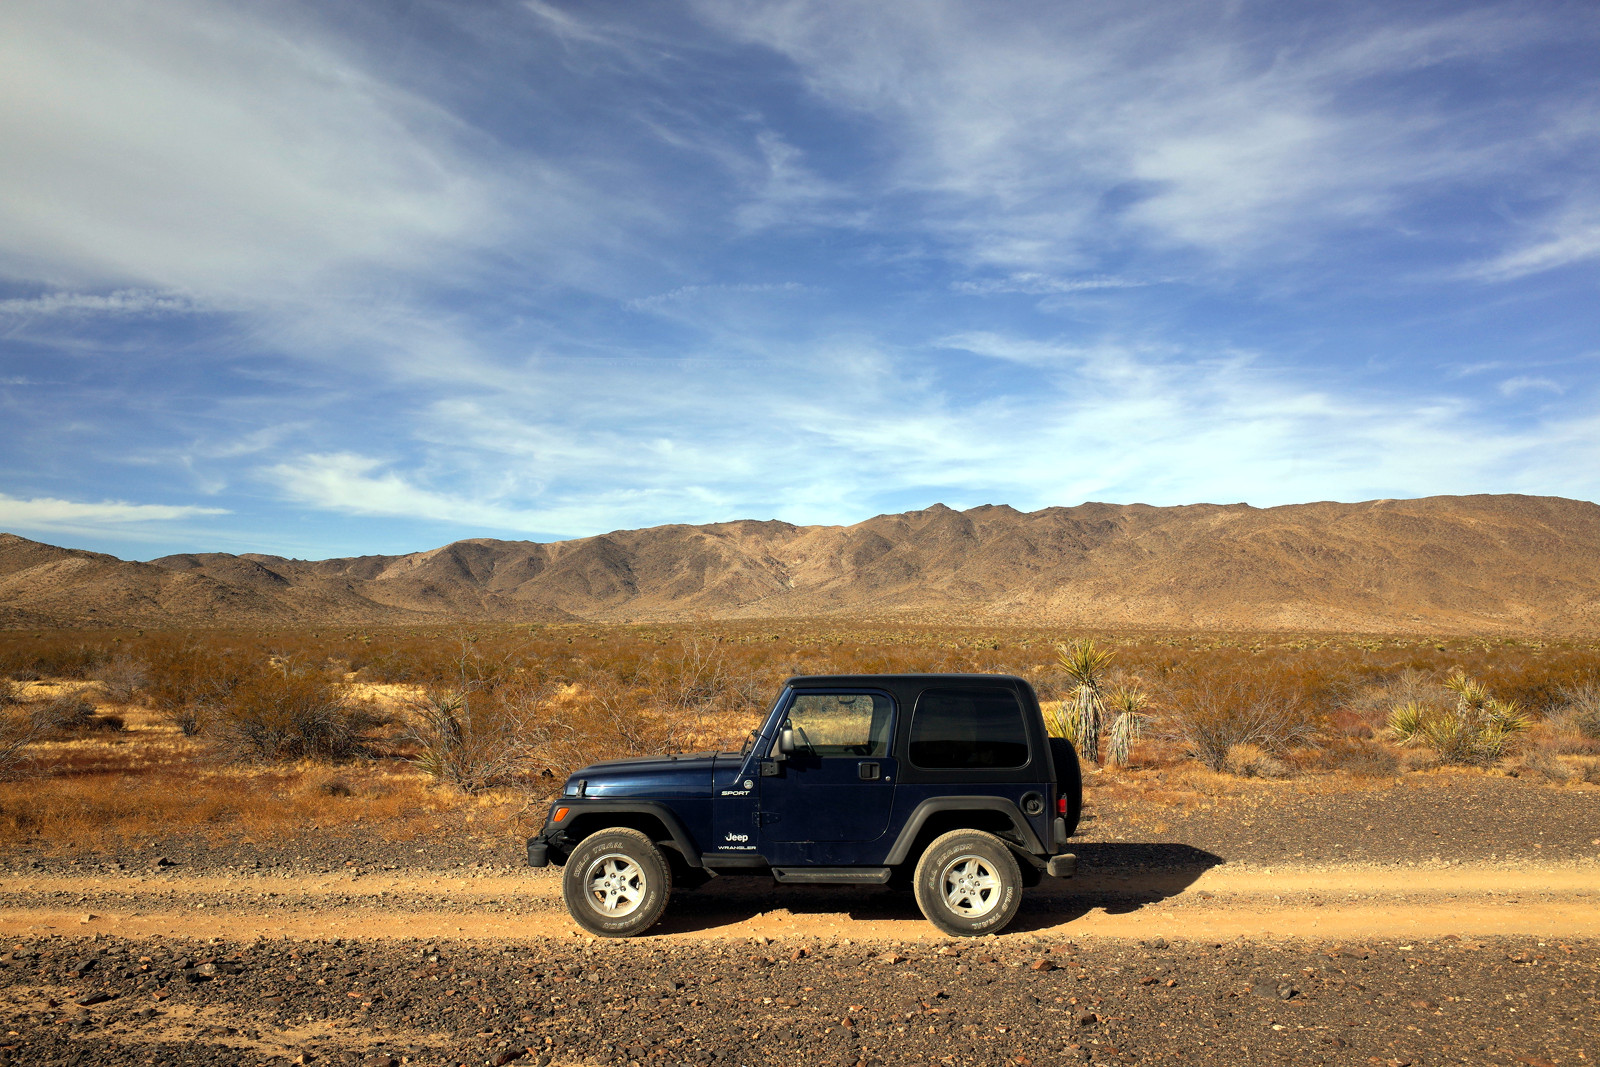 La Jeep in profile on Pinkham Canyon in Joshua Tree National Park